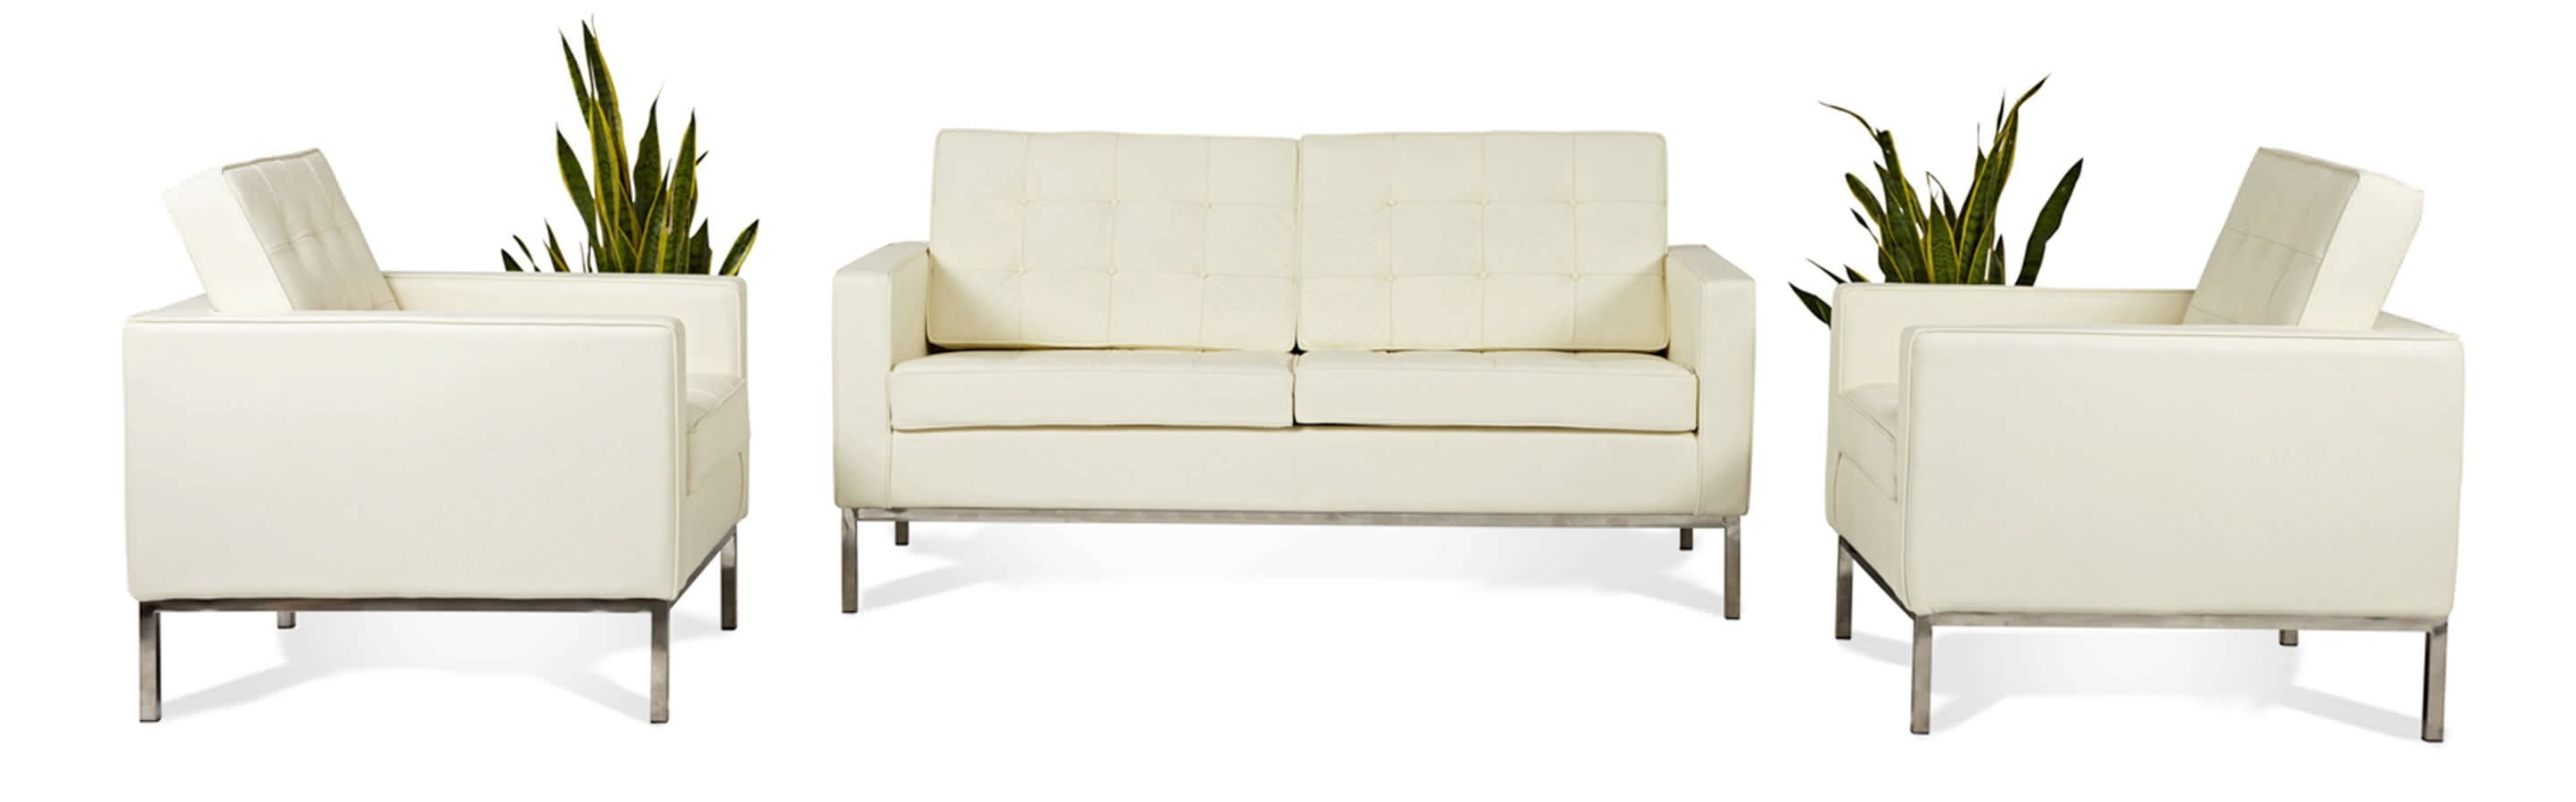 Florence Knoll Style Sofas Intended For Well Known Florence Knoll Style Loveseat 2 Seater Small Sofa Mid Century Modern (View 18 of 20)